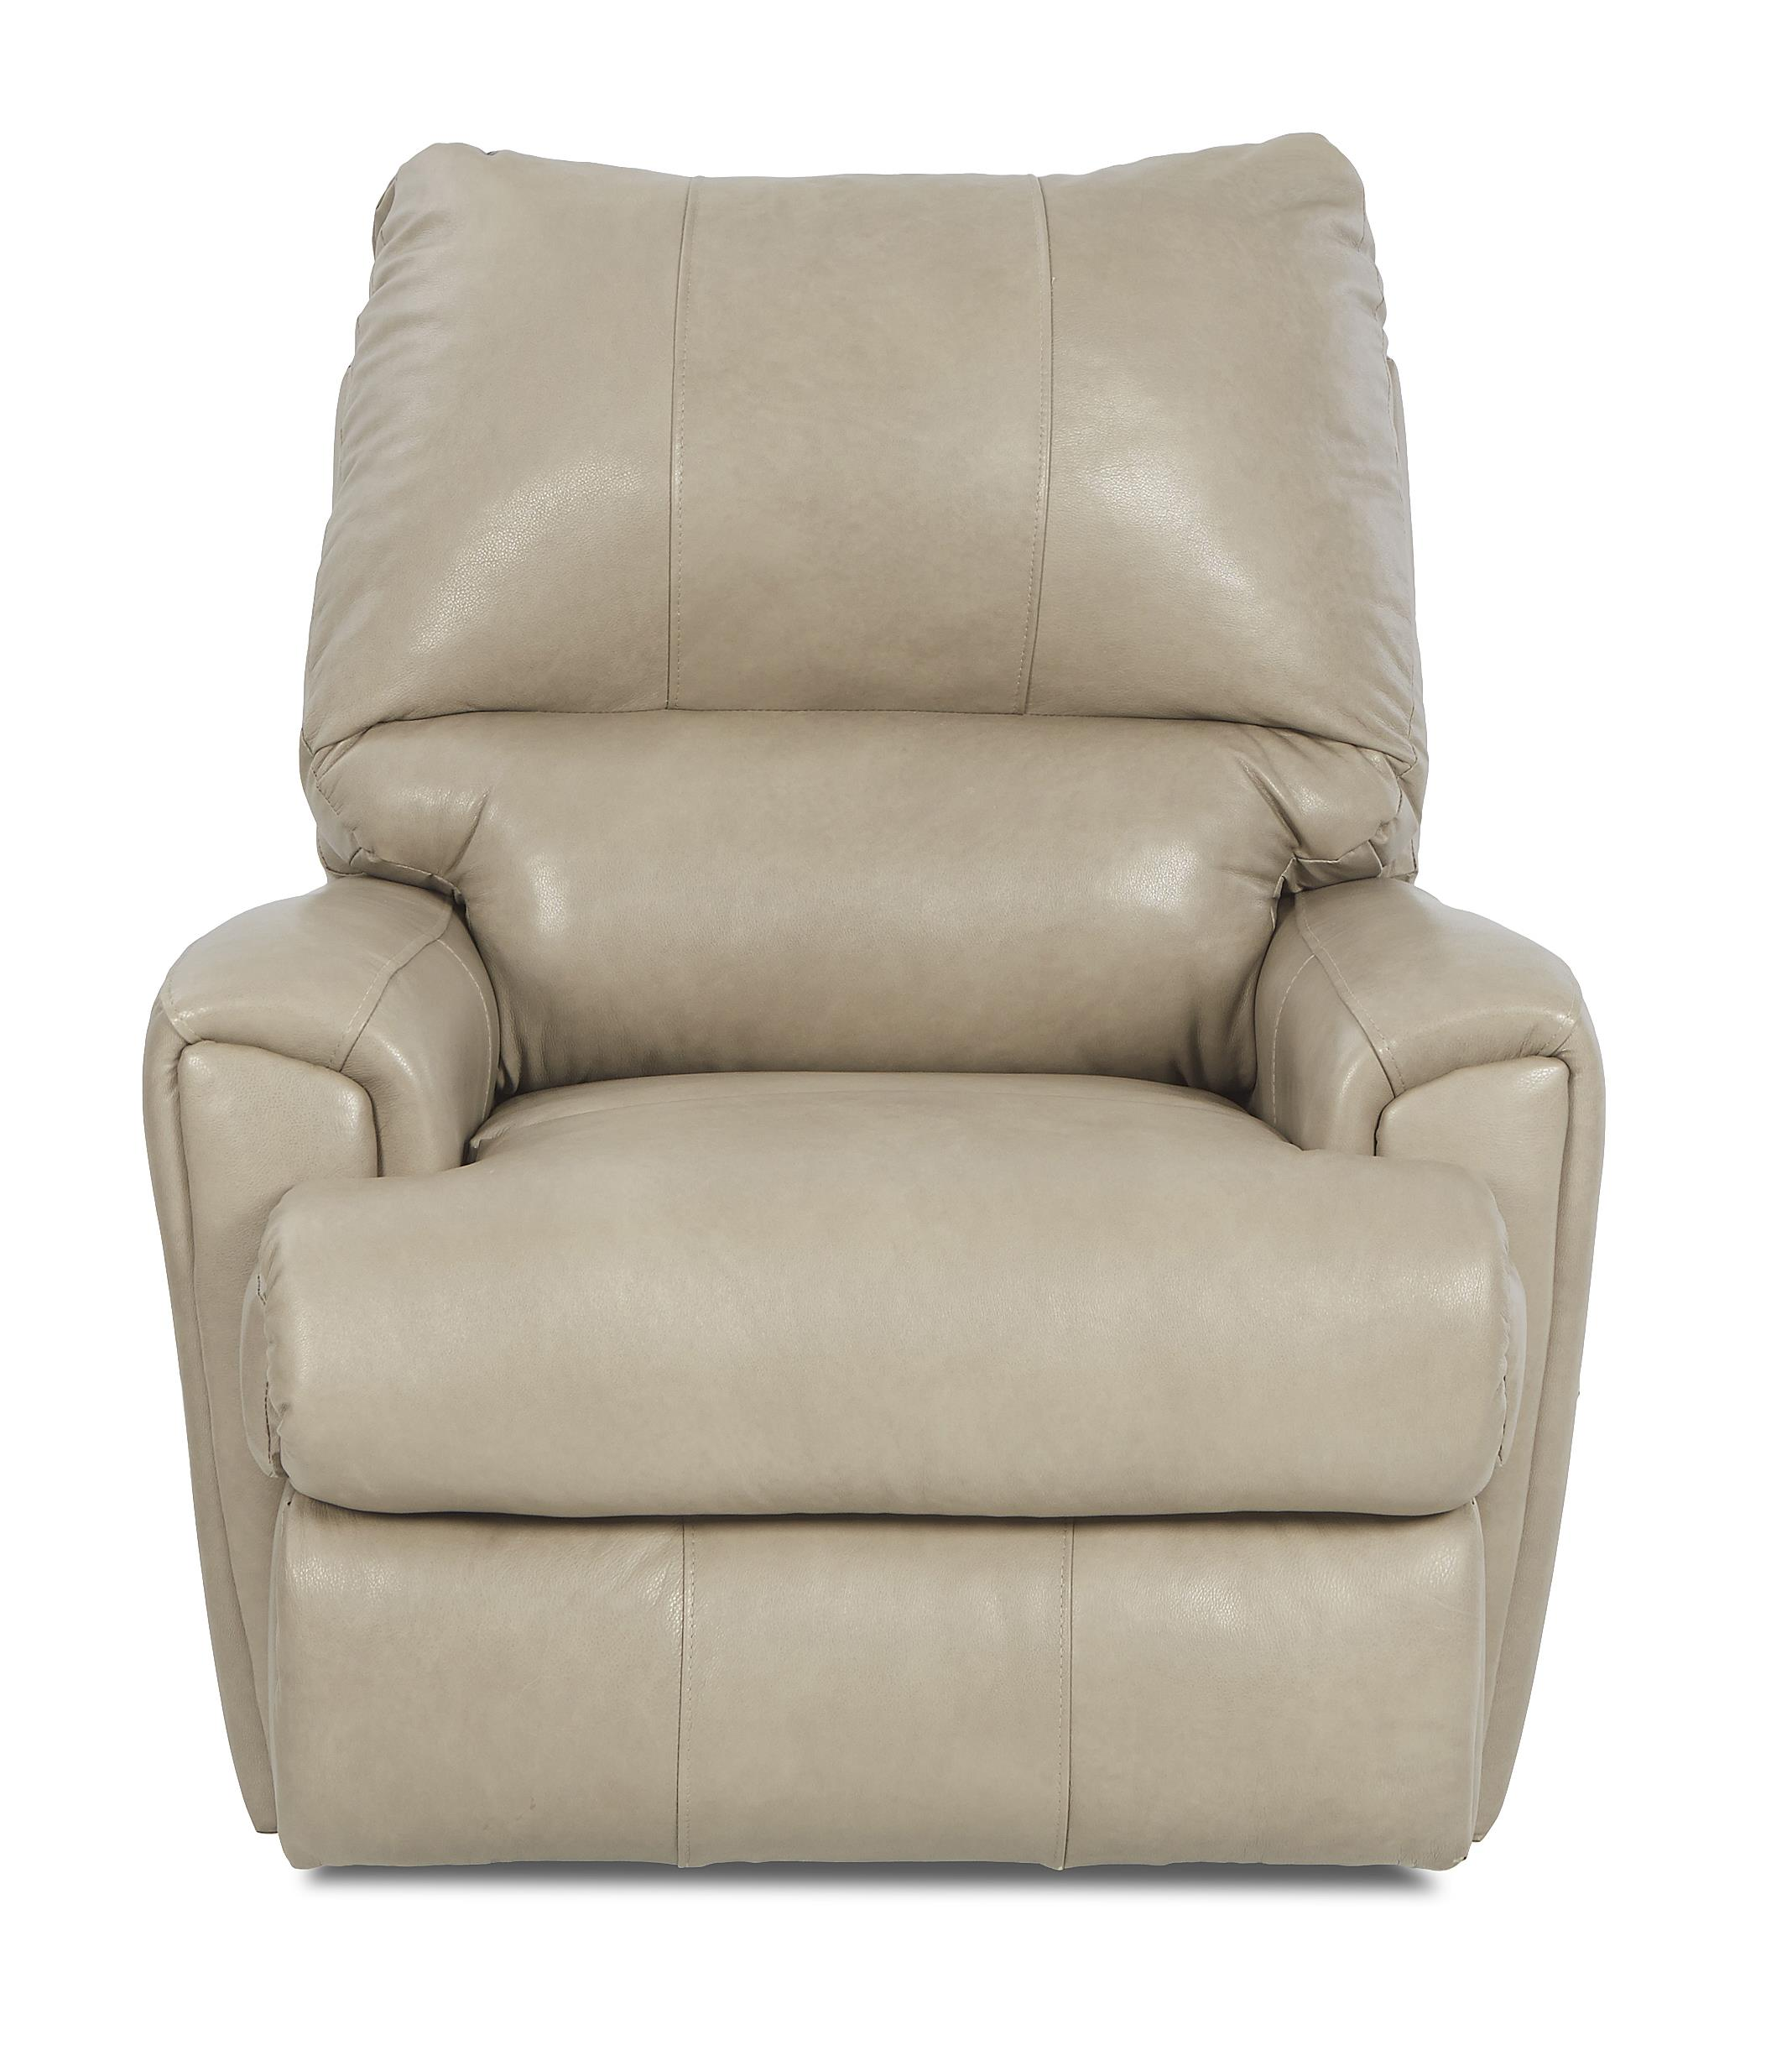 Klaussner Julio Transitional Reclining Chair - Item Number: LV83103H RC-SteamboatPutty